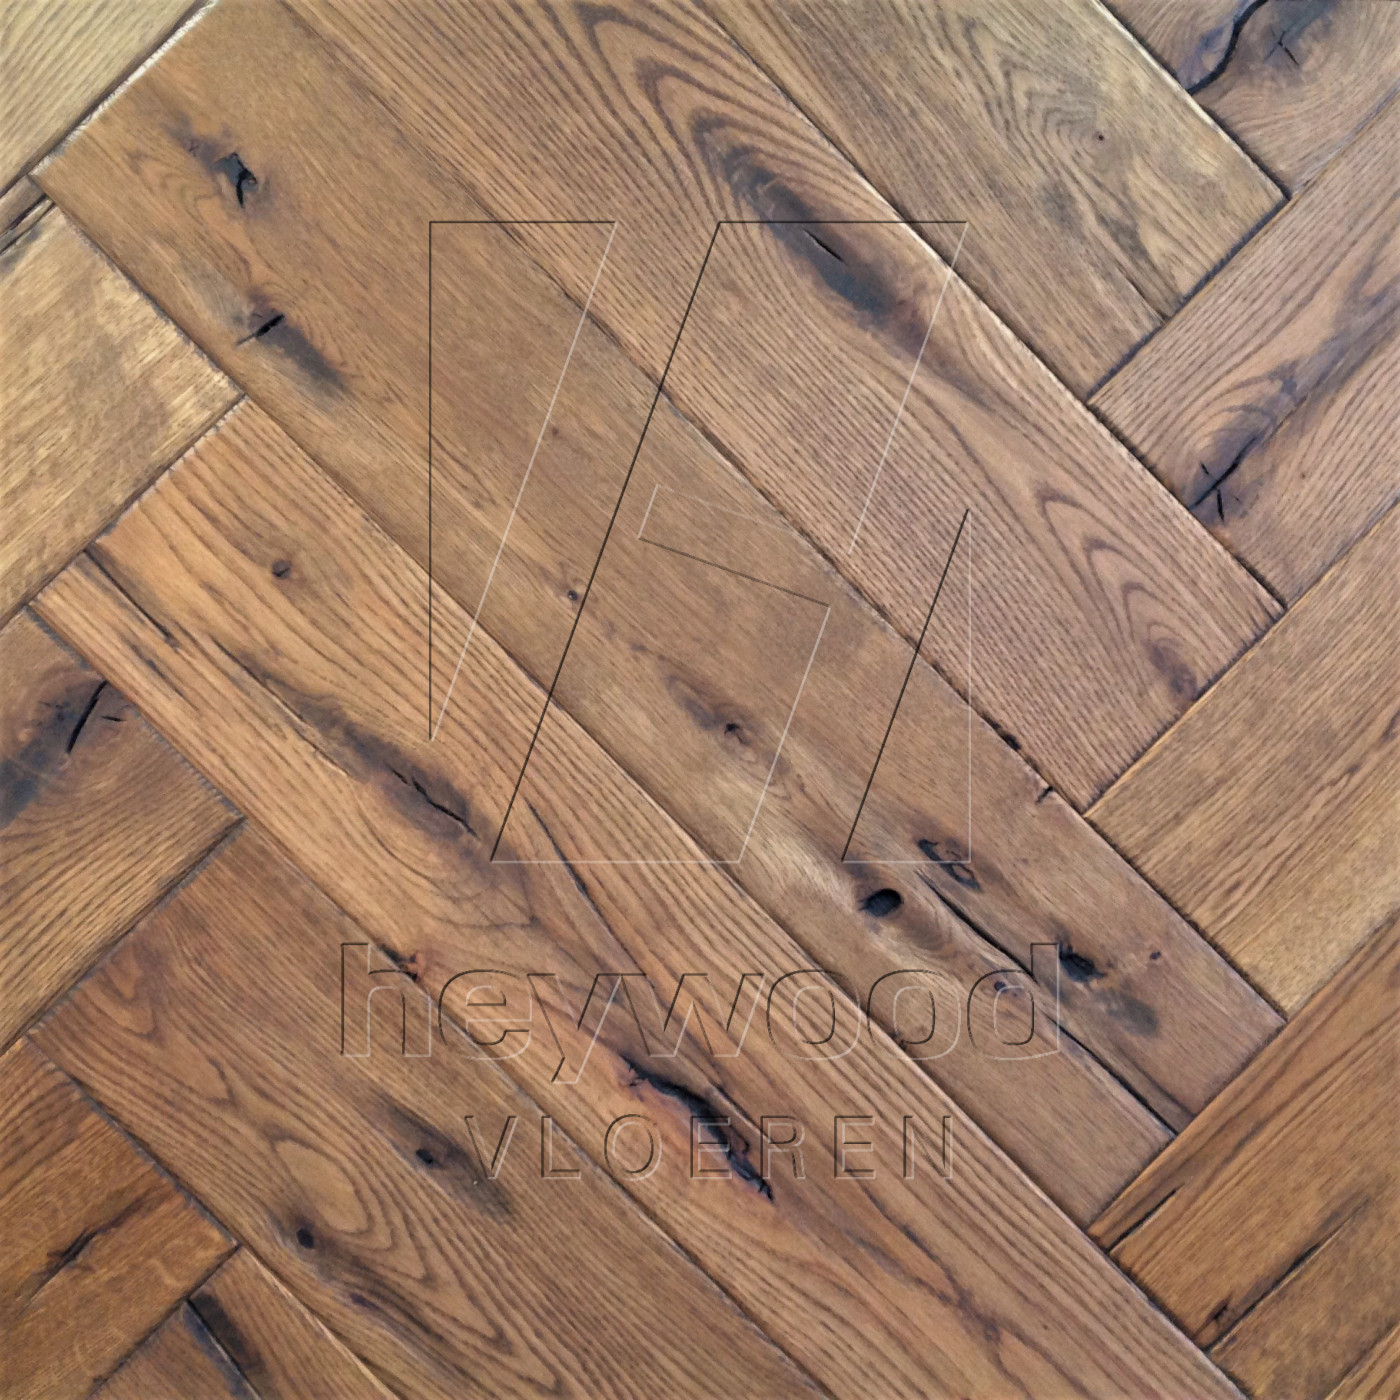 Katla Antique Herringbone in Herringbone of Pattern & Panel Floors